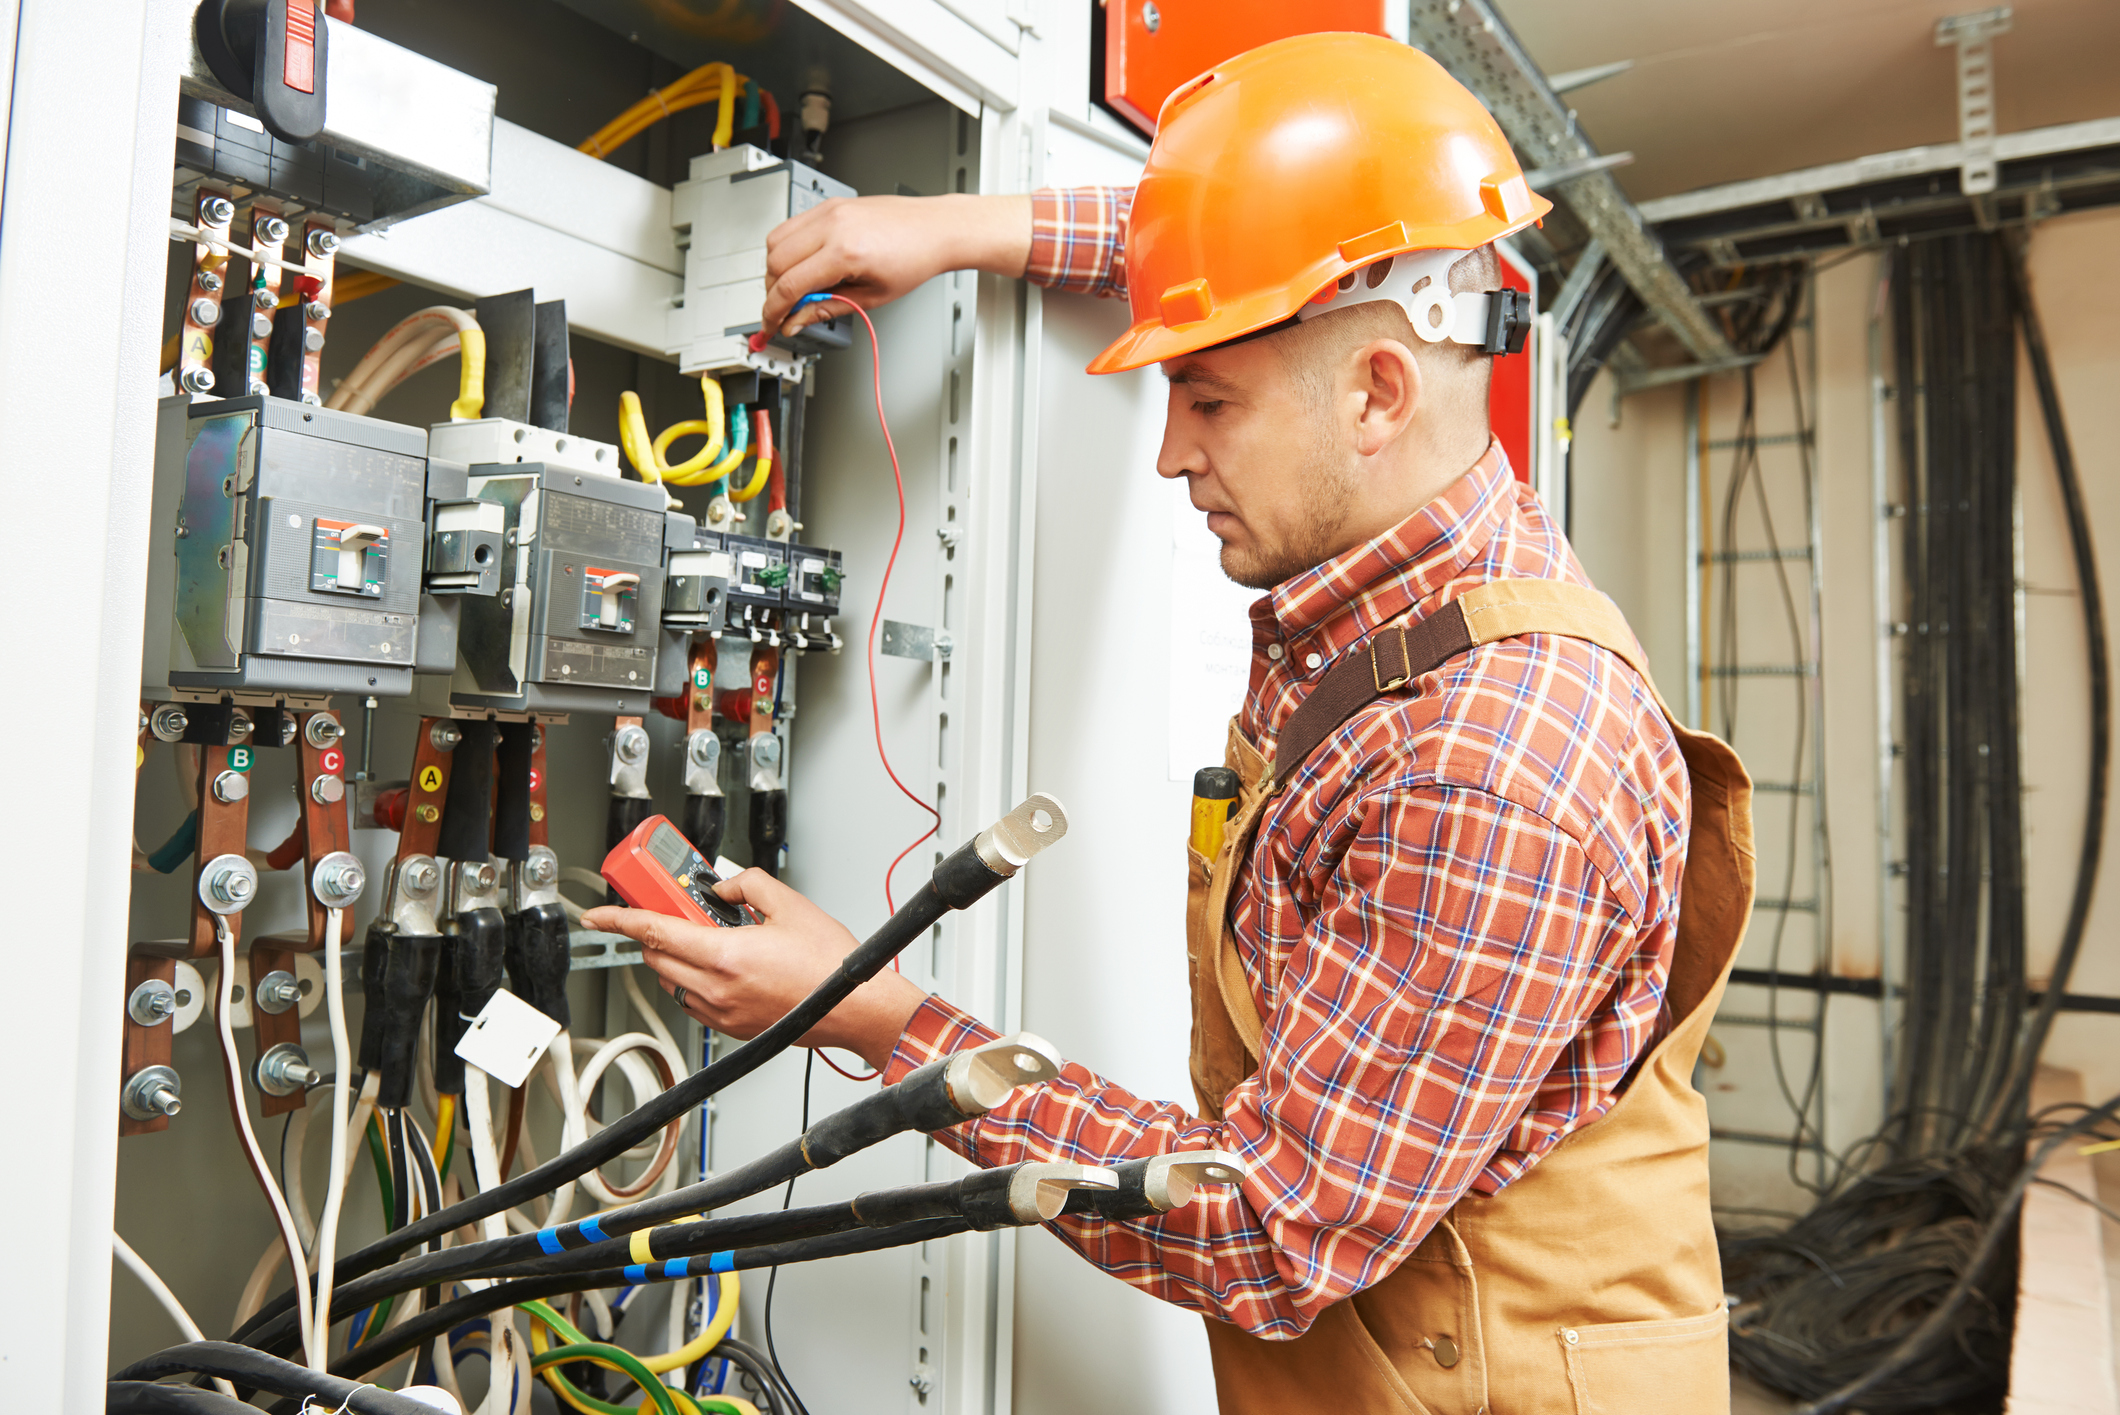 Electrical Services, Electricians, Residential Electrical Work